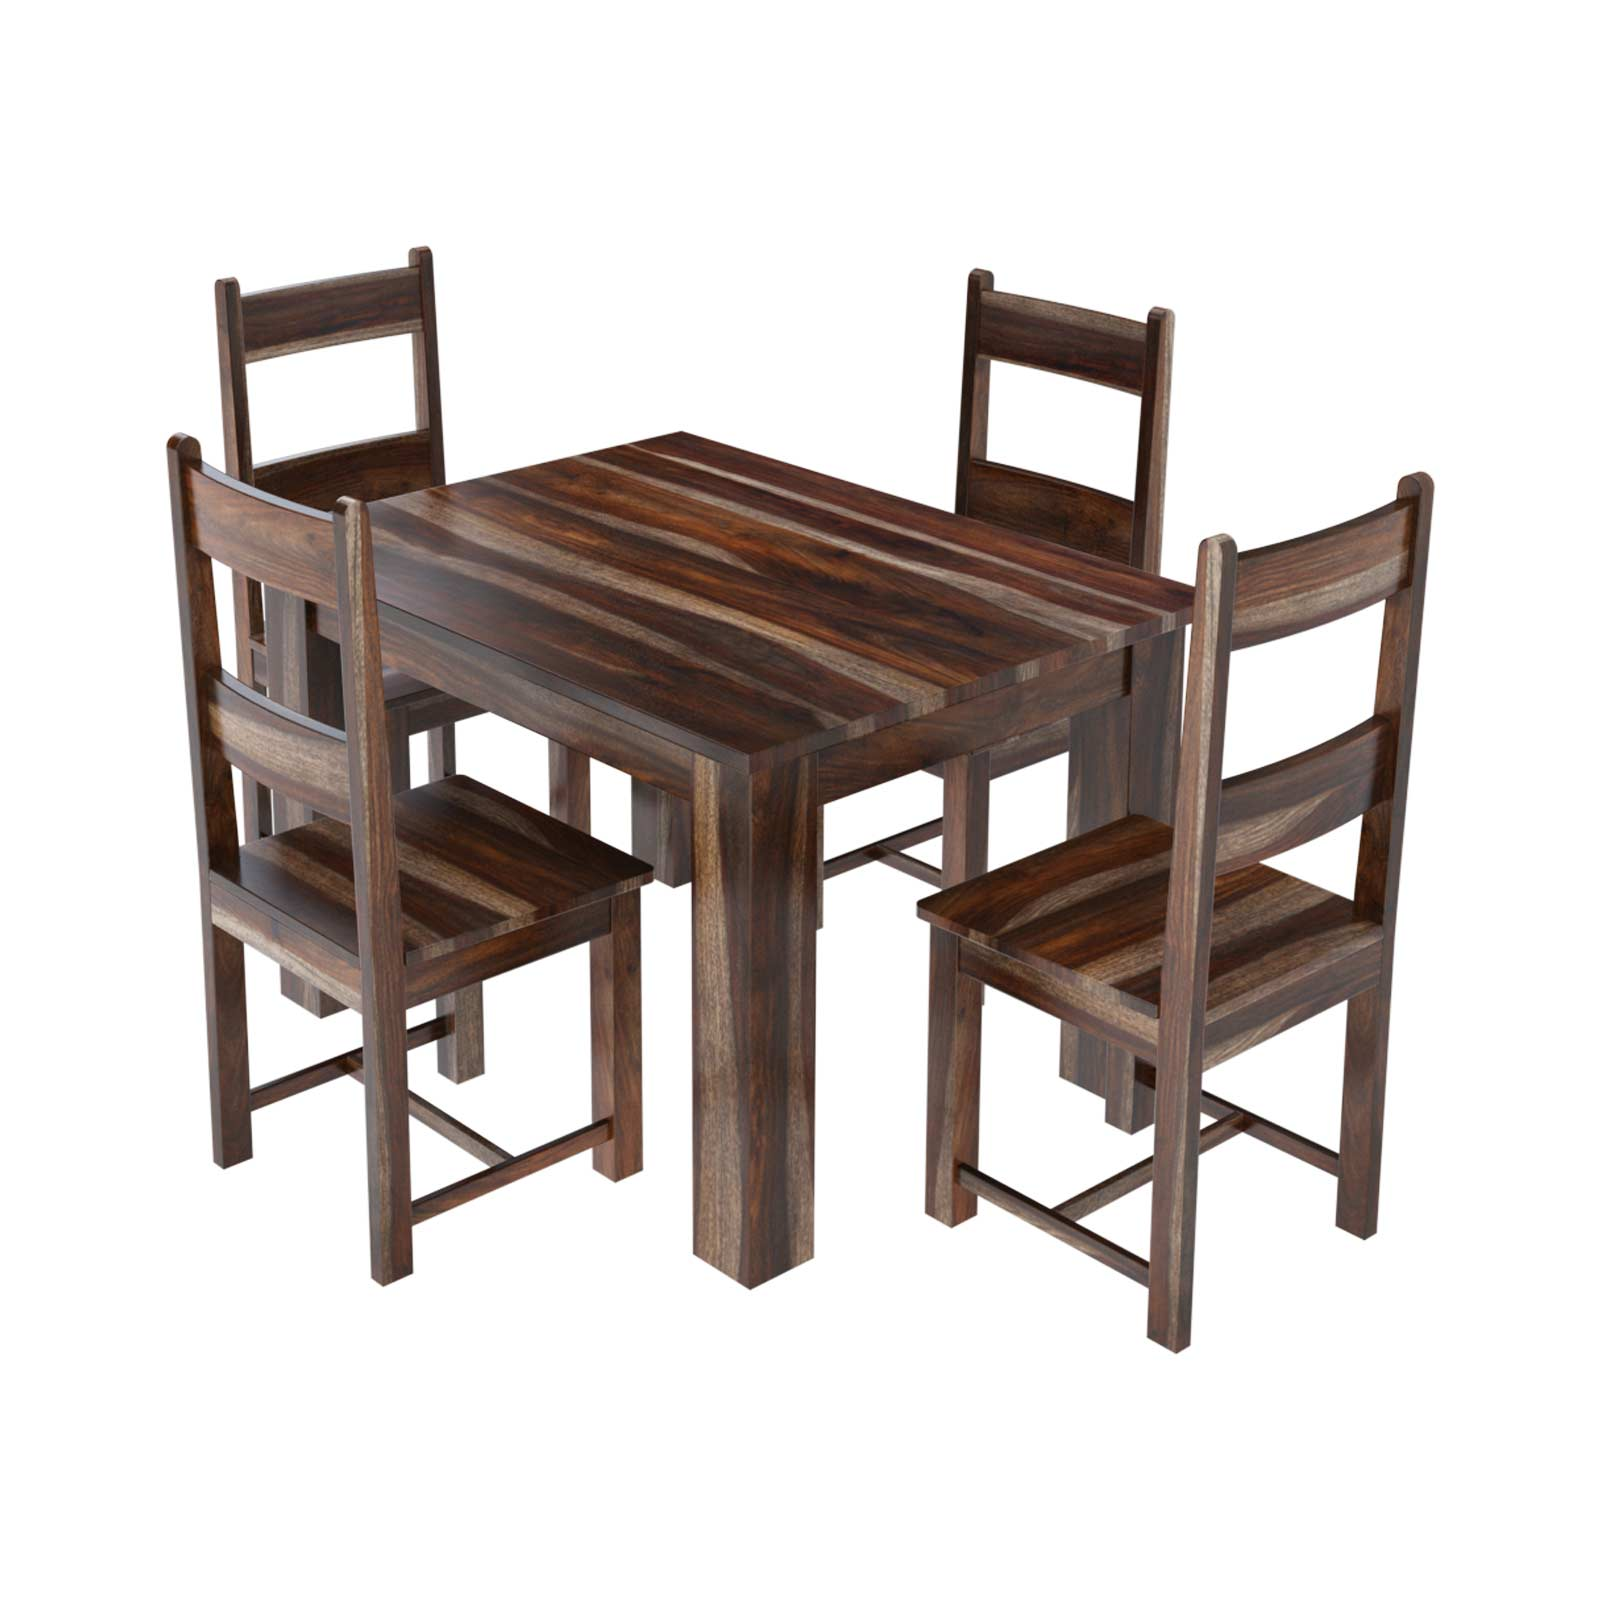 Rustic Dining Table And Chairs: Alabama Modern Rustic Solid Wood Dining Table And Chair Set